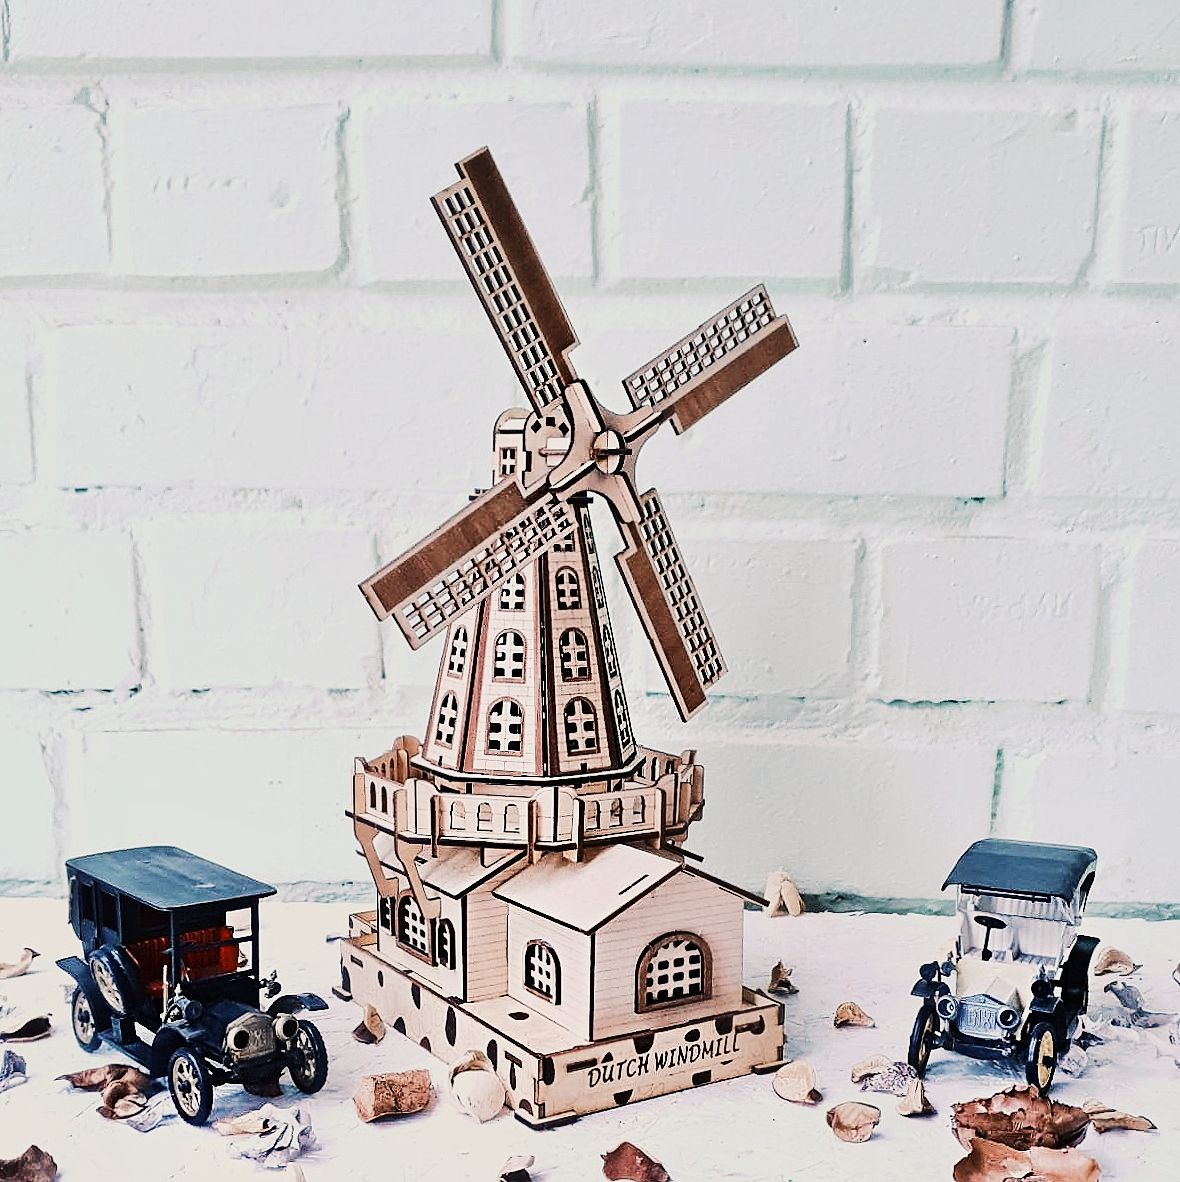 Wooden 3d Puzzle Build Your Own Dutch Windmill Craft Kit For Adults Constructor Self Assembly Unique Items Products Crafts Craft Kits